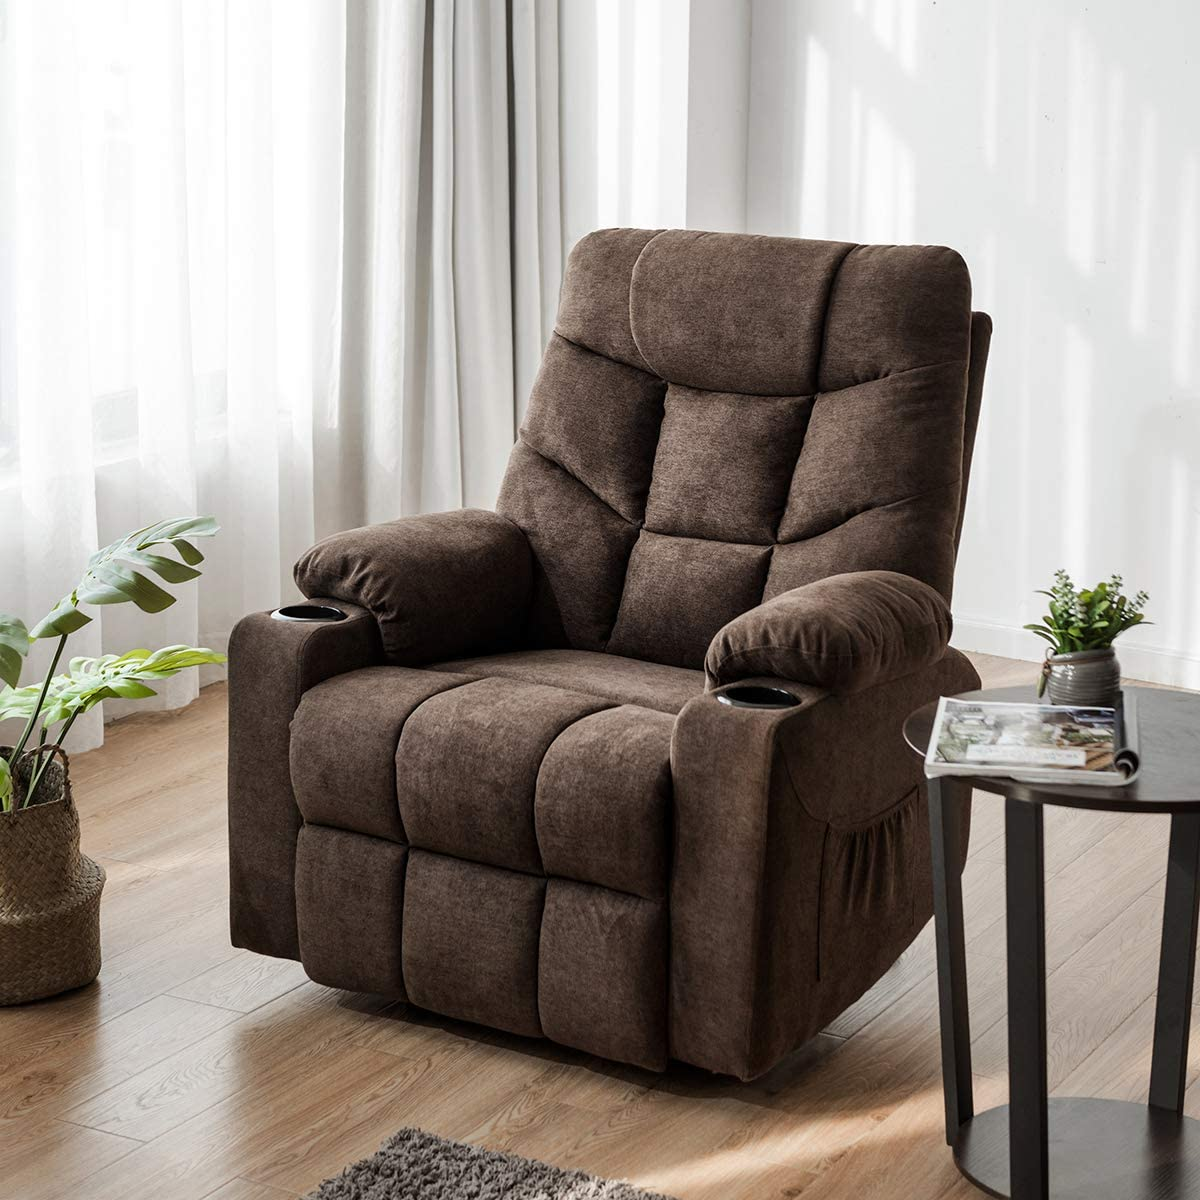 Furgle Power Lift Recliner Chair Faux Leather Electric with Massage Heat and Vibration for Elderly Living Room Lounge Massage Sofa with 2 Remotes Side Pockets and Cup Holders TUV Certified – Brown